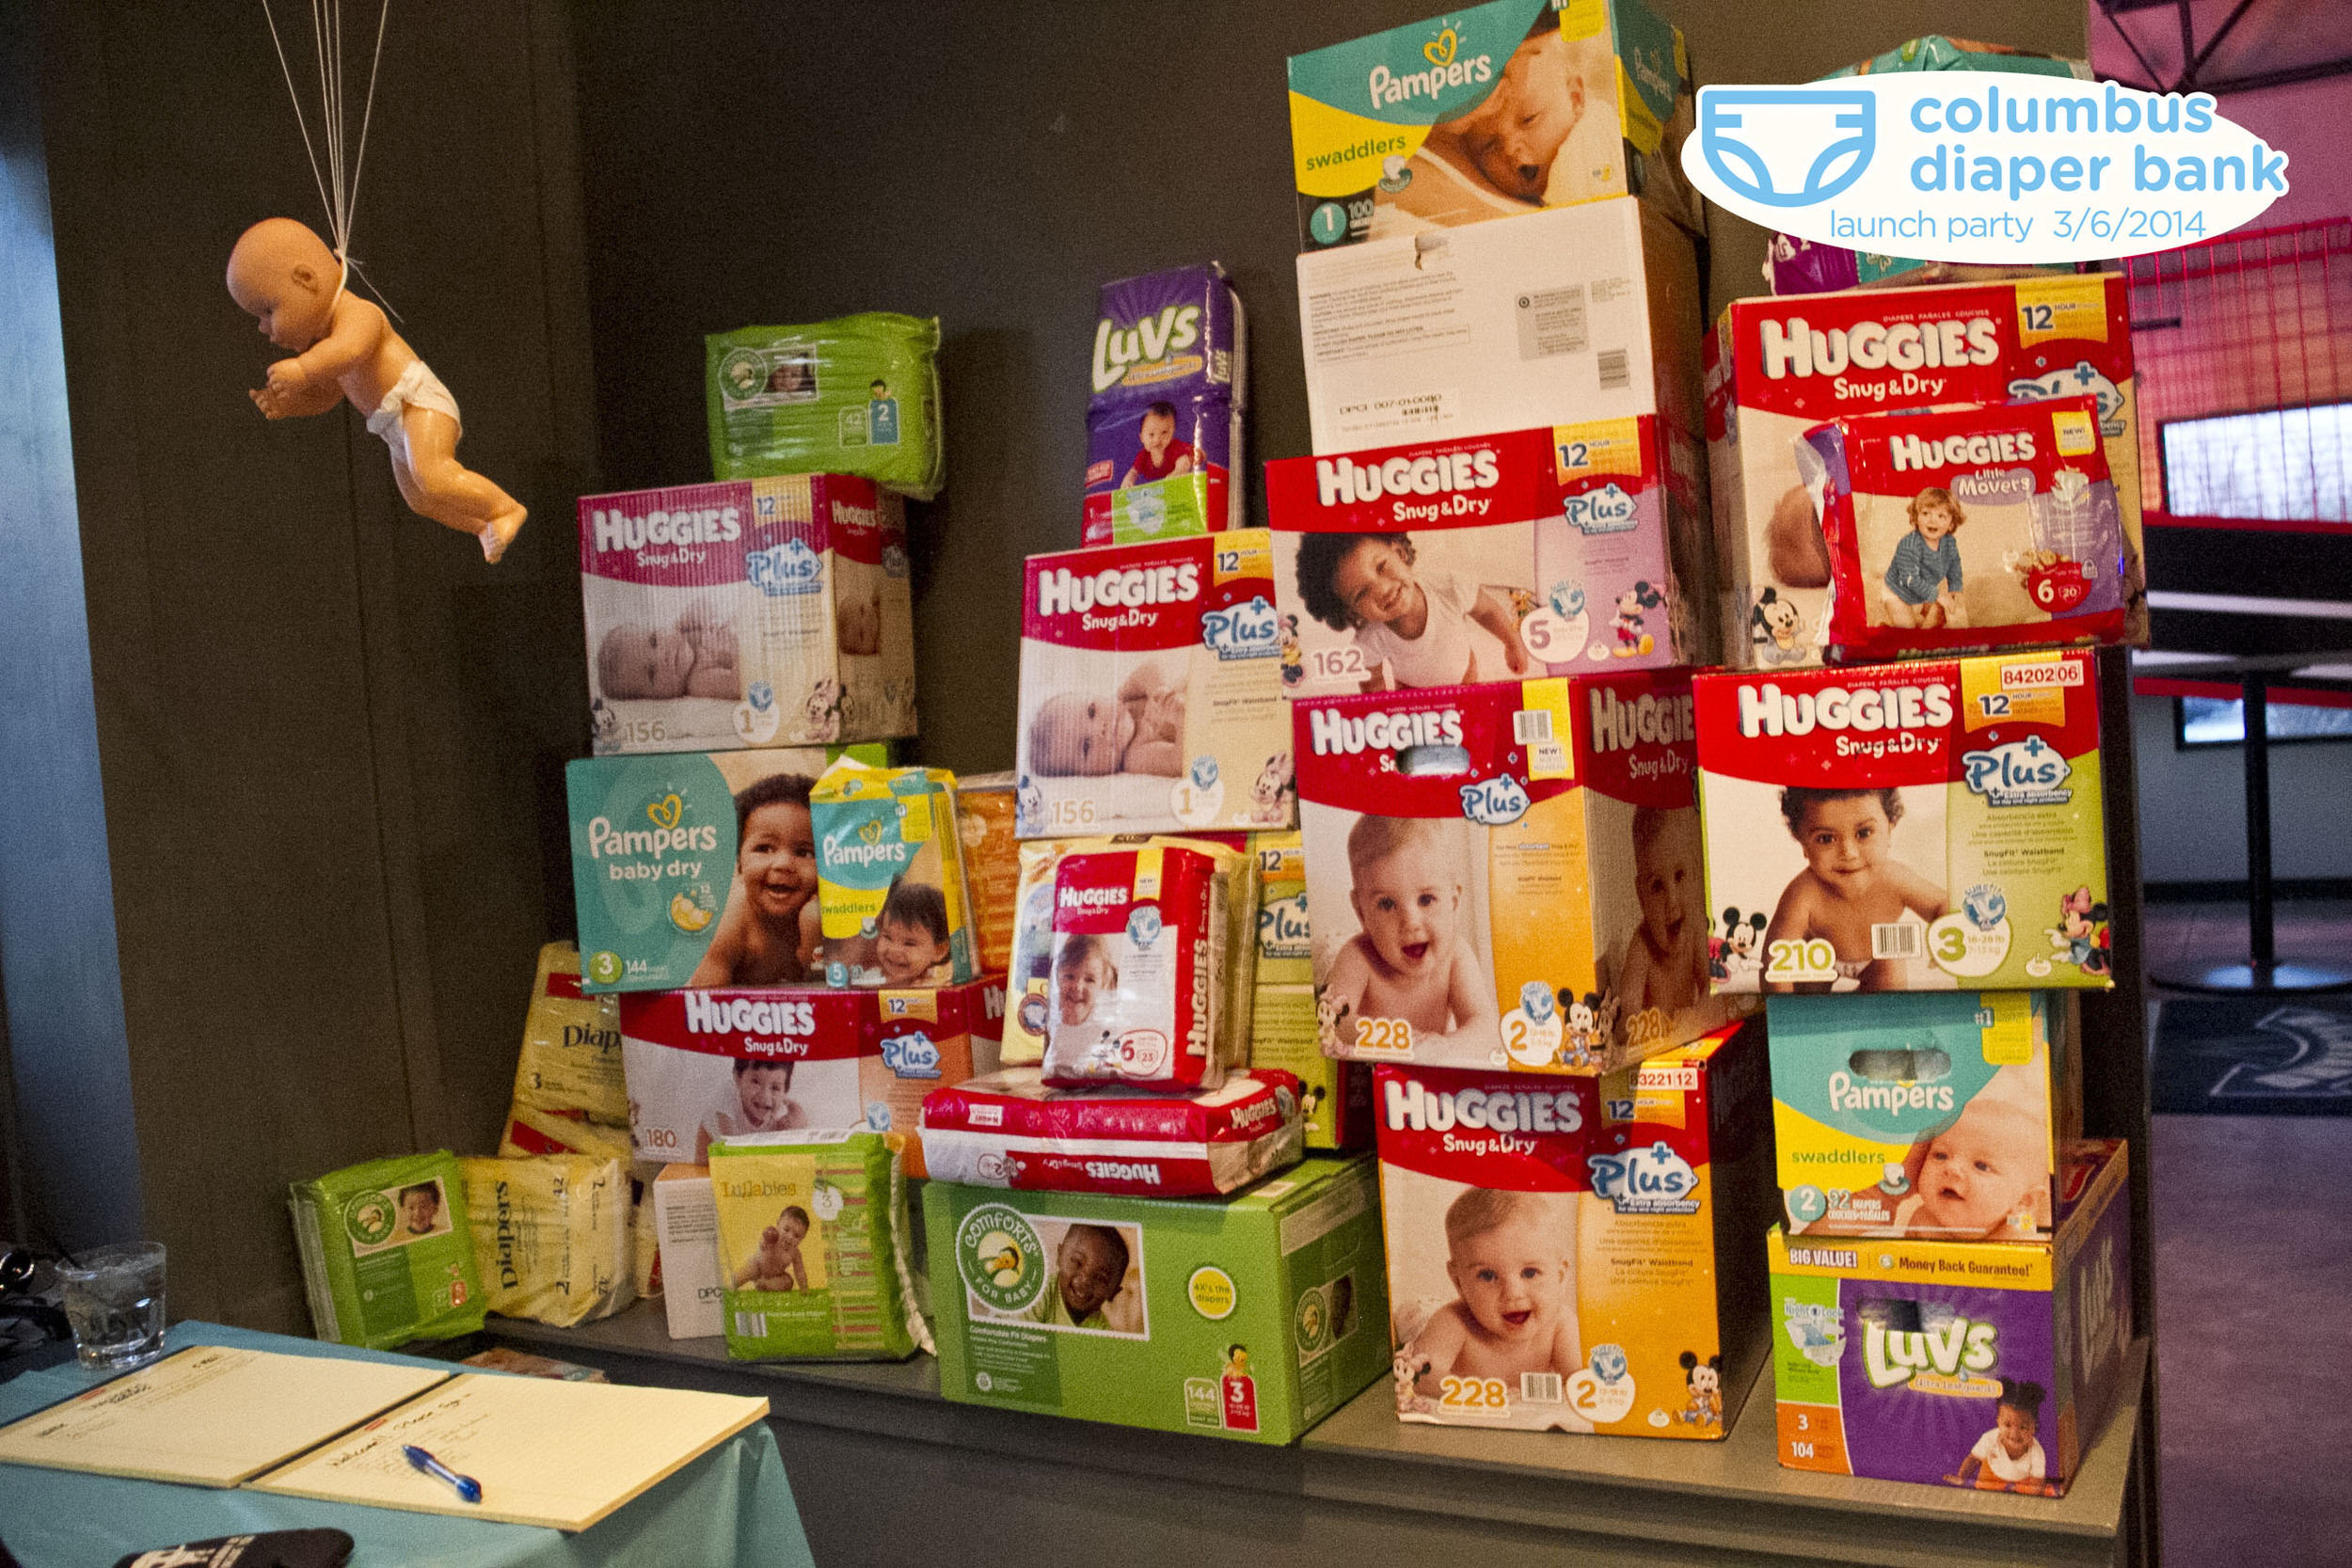 4,196 diapers!